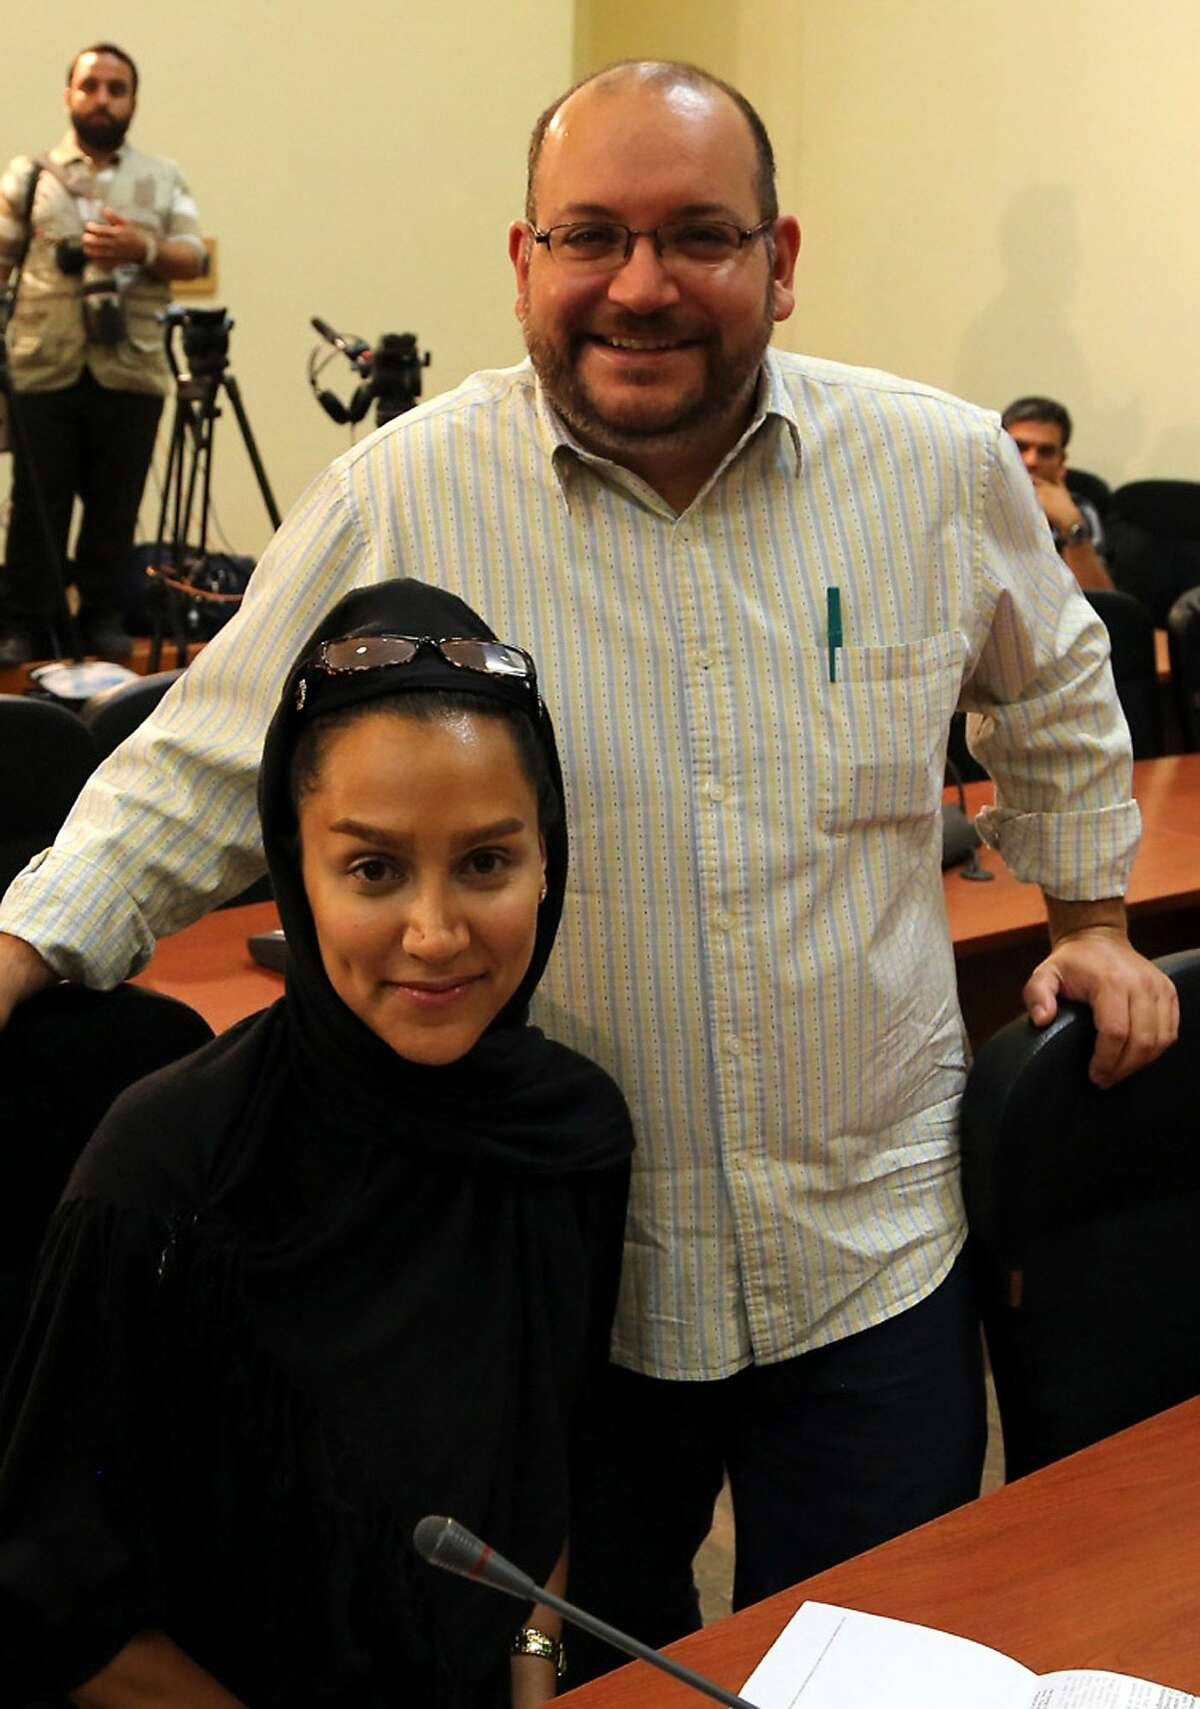 A file picture shows Iranian-American Washington Post correspondent Jason Rezaian and his Iranian wife Yeganeh Salehi posing while covering a press conference at Iran's Foreign Ministry in Tehran, on September 10, 2013. Tehran's chief justice Gholamhossein Esmaili confirmed the arrest of Washington Post correspondent Jason Rezaian and his wife, also a journalist, the official IRNA news agency reported. Rezaian, 38, has been the Post correspondent in Tehran since 2012 and holds both American and Iranian citizenship, according to the newspaper and his wife is an Iranian who has applied for US permanent residency and works as a correspondent for The Nation newspaper based in the United Arab Emirates, the Post said.